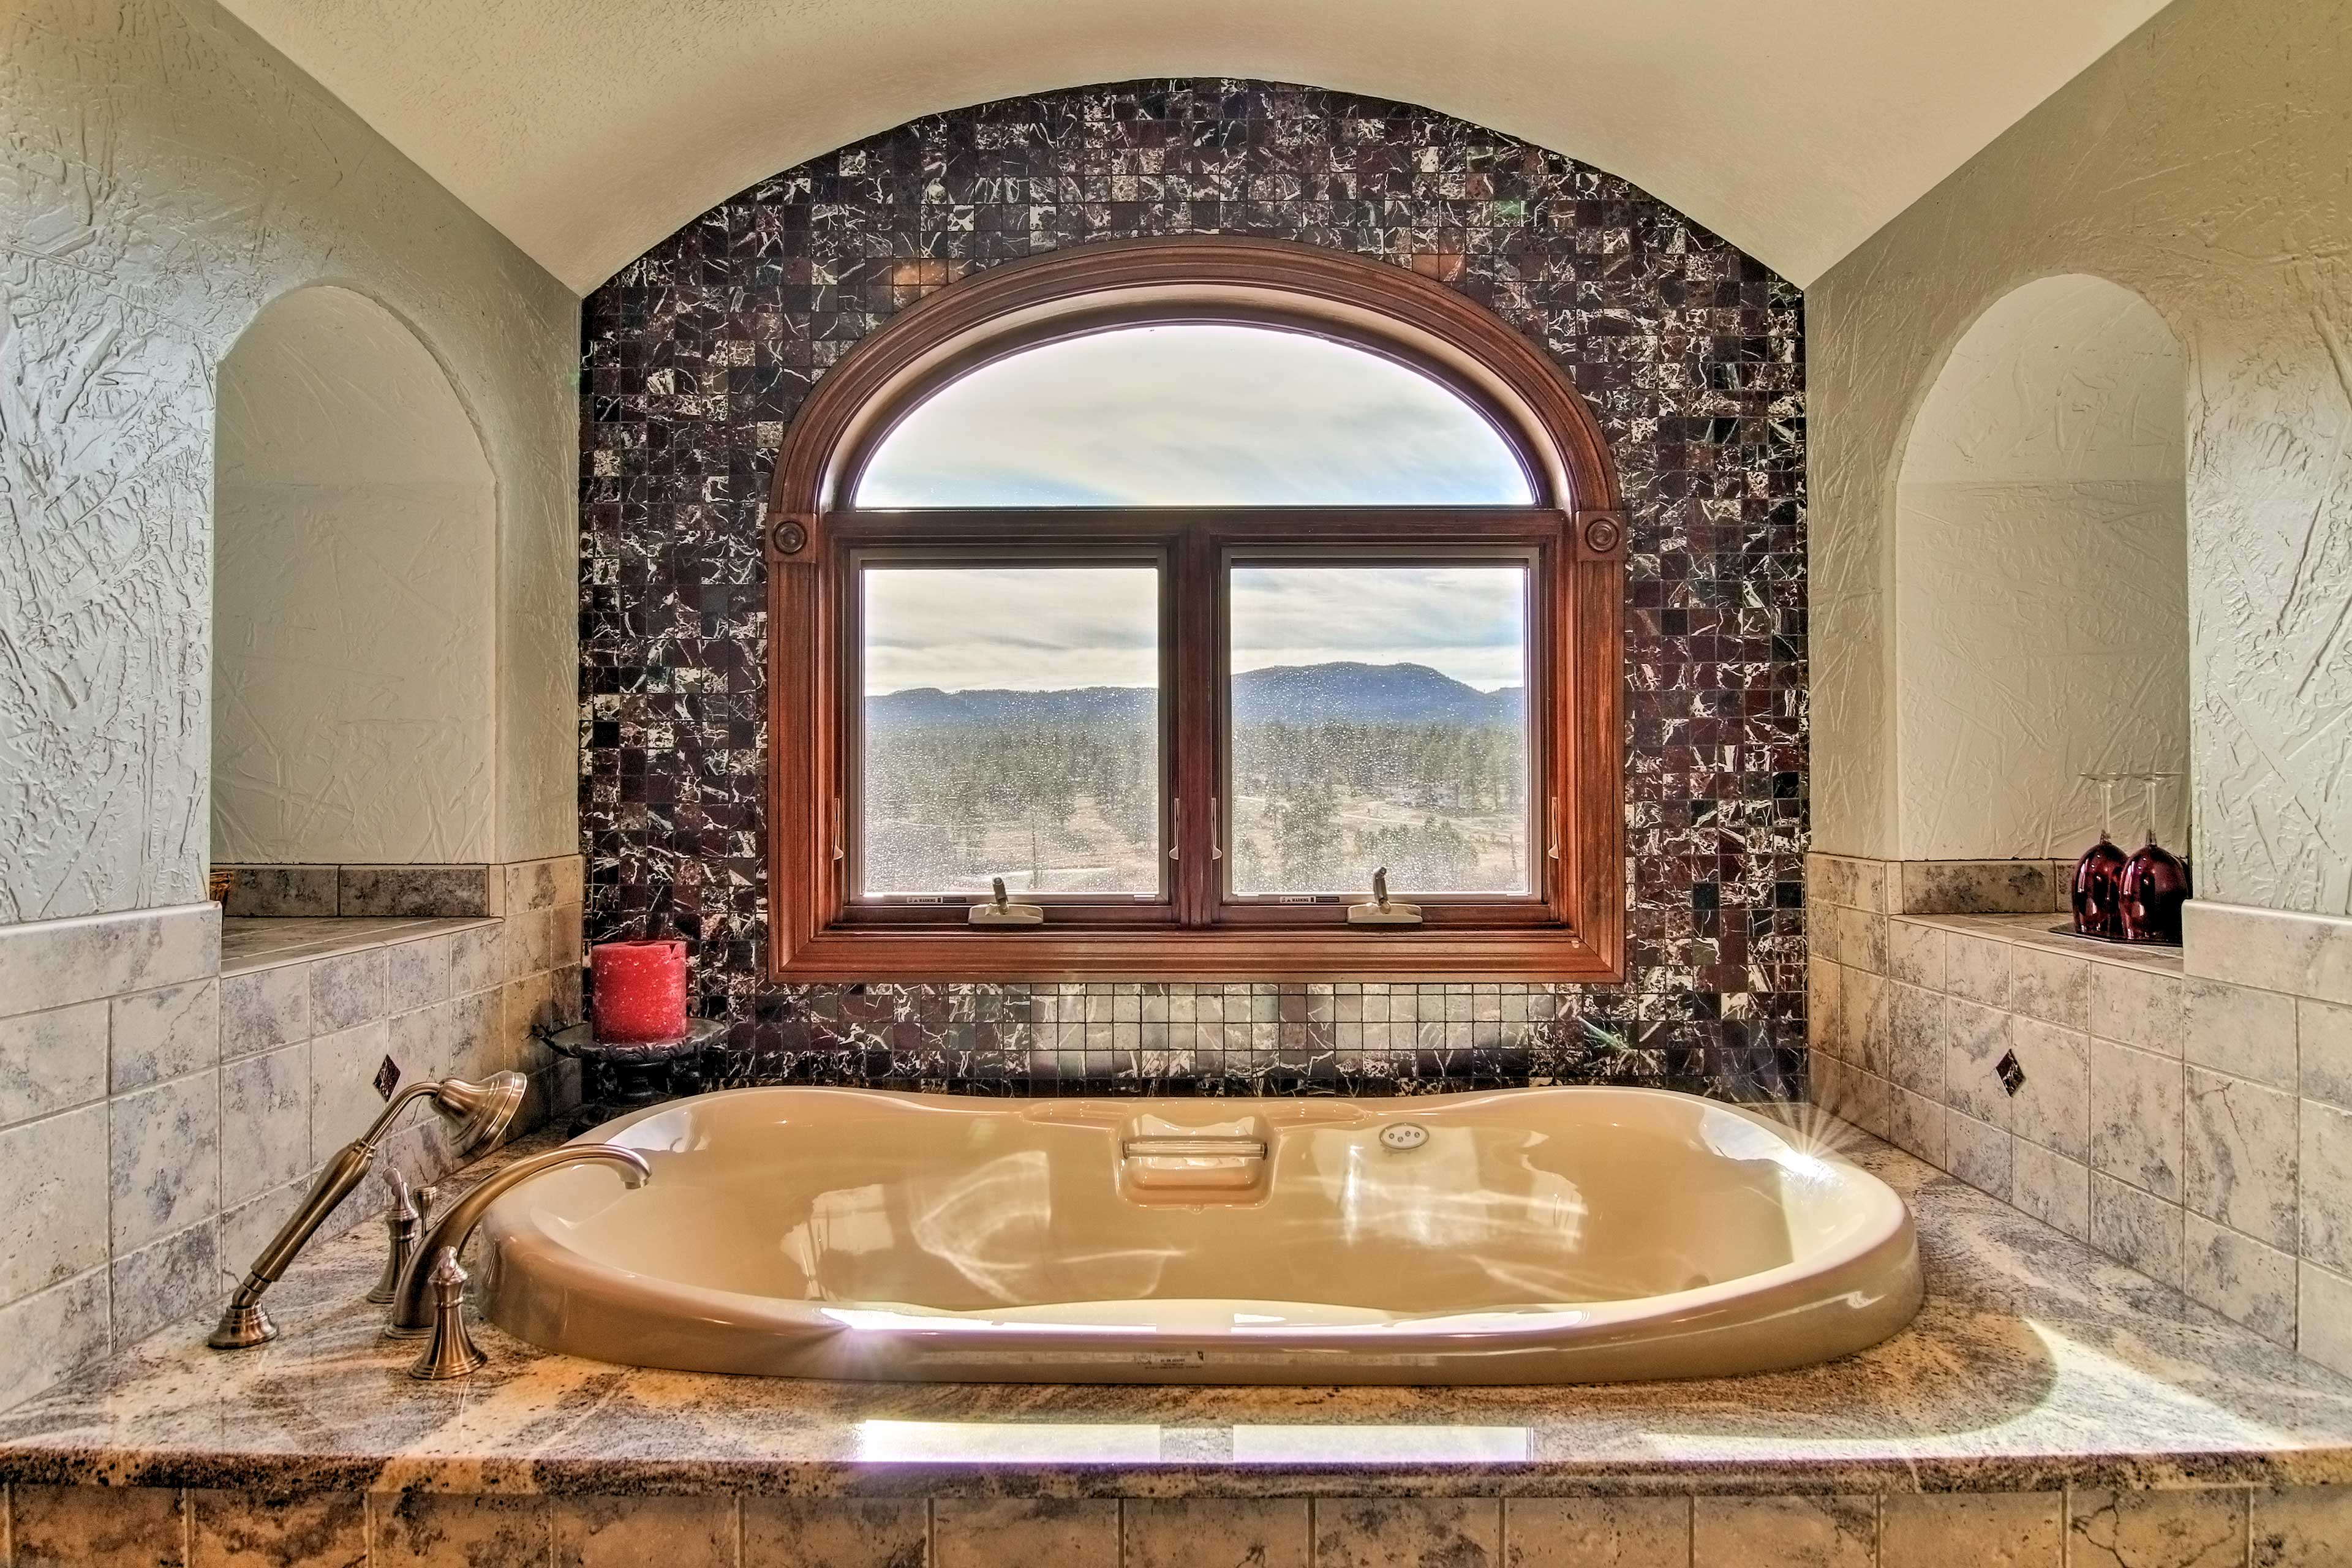 Soak in the tub and enjoy  the views.